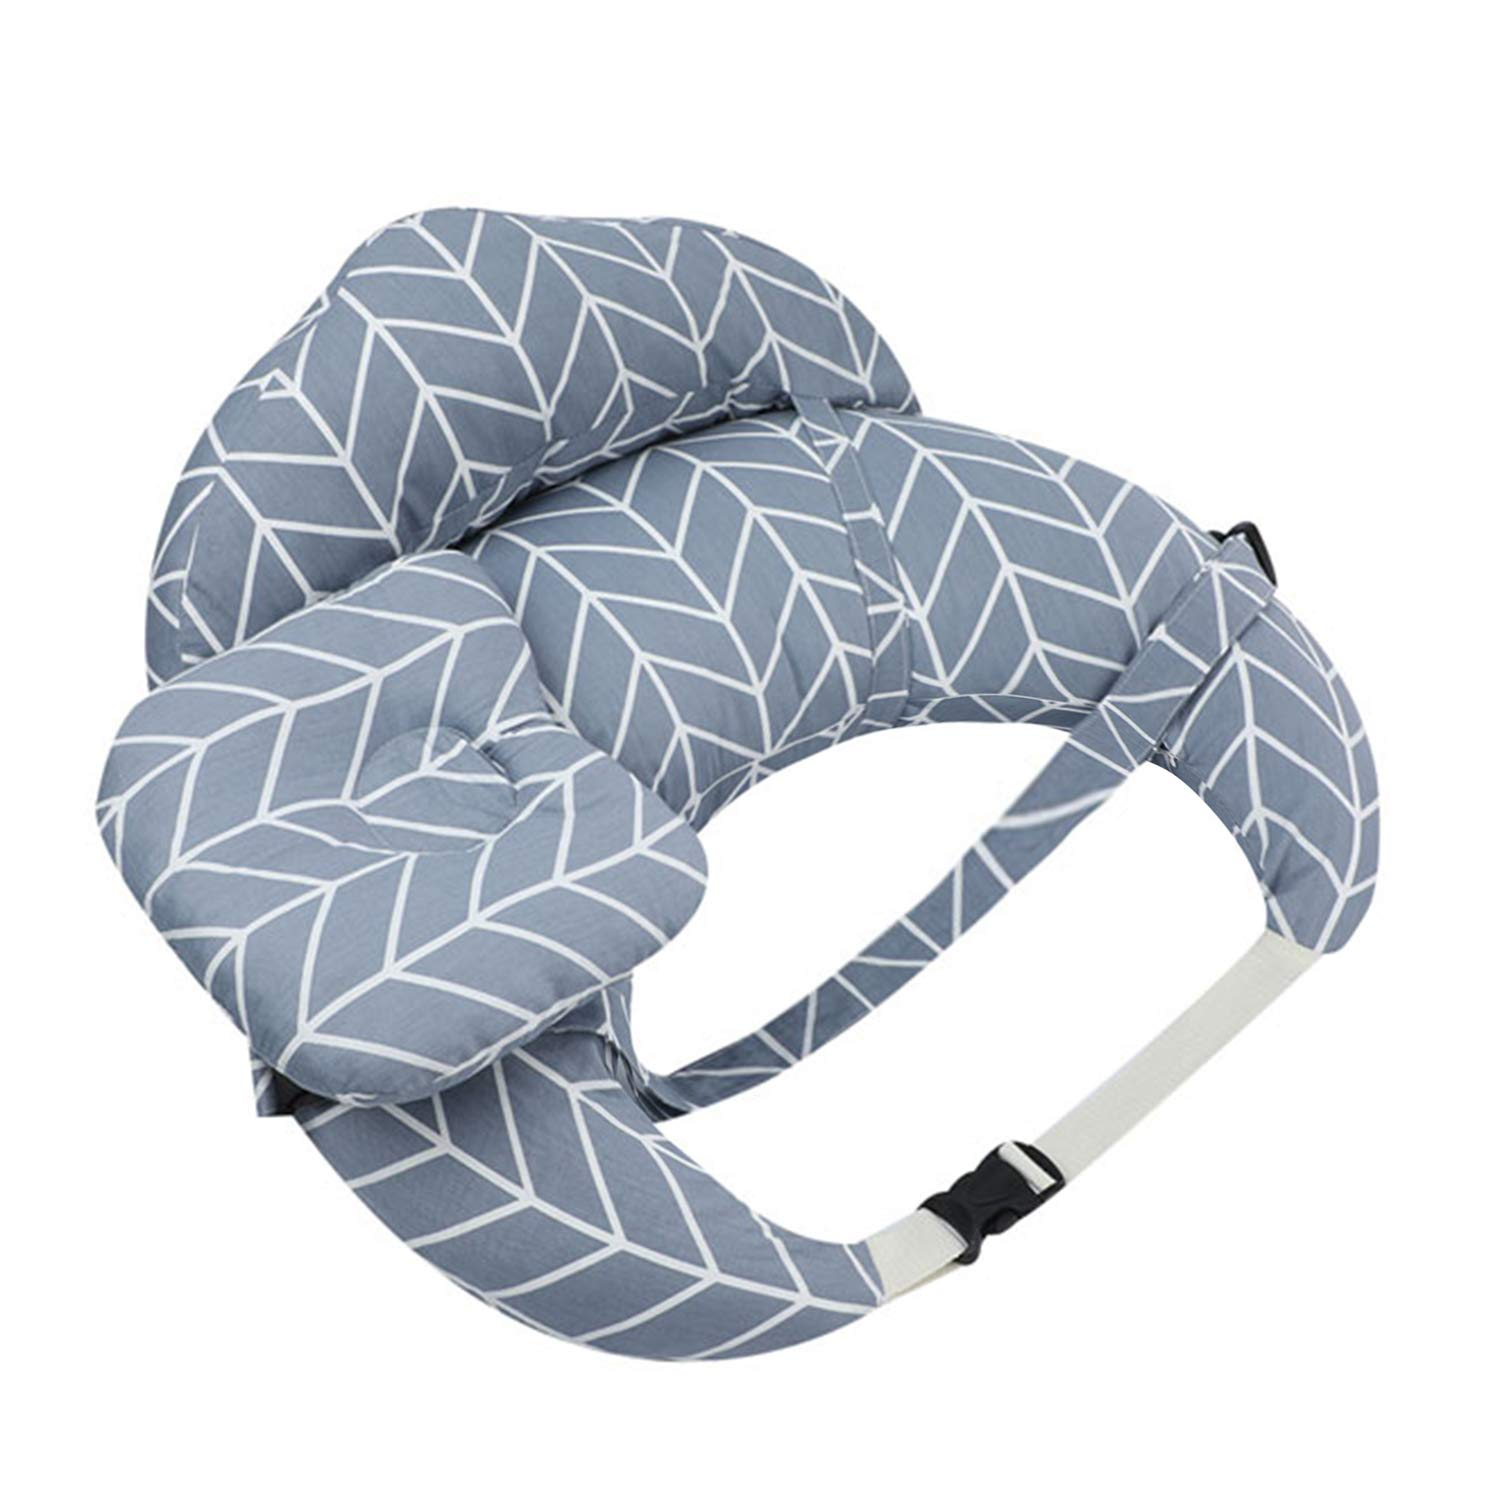 3 Packs Newborn Nursing Pillow and Positioner Infant Breastfeeding Pillows with Headrest & Backrest & Halter Neck Sling Perfect Baby Shower Registry Gifts New Grey